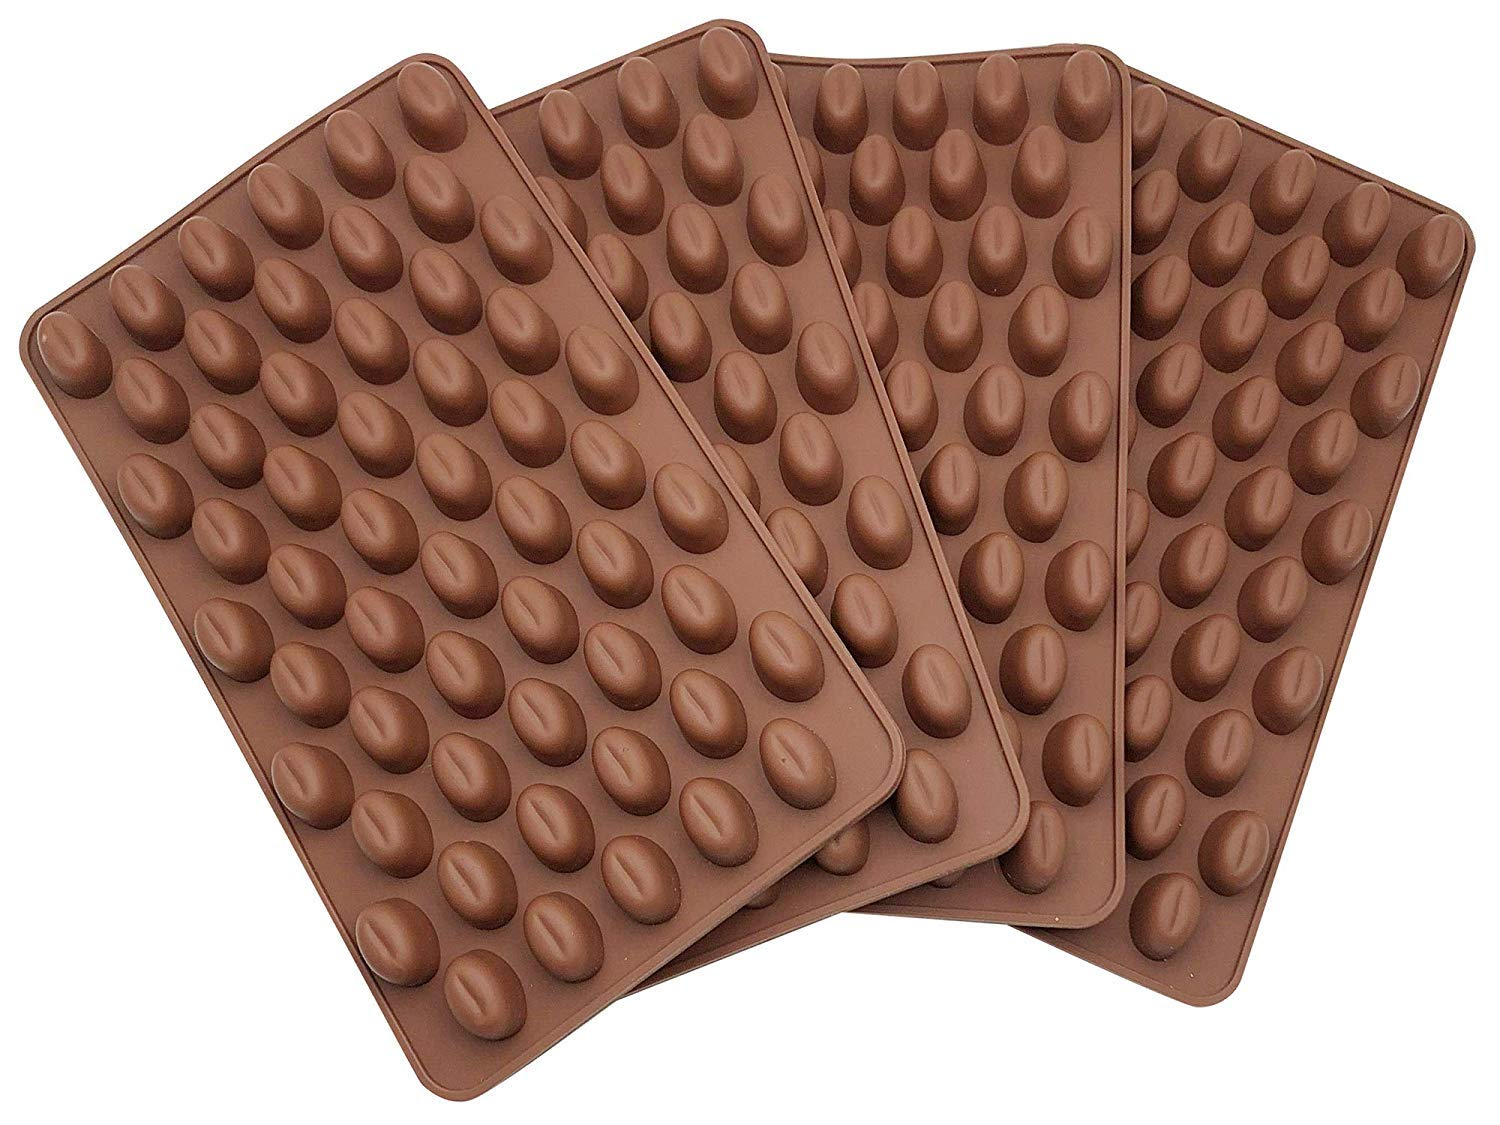 AxeSickle 4PCS Mini Coffee Beans Chocolate Mold Silicon Mold Small Candy Mold, Hard Candy Mold, Baking Mold DIY Cake Decorating.